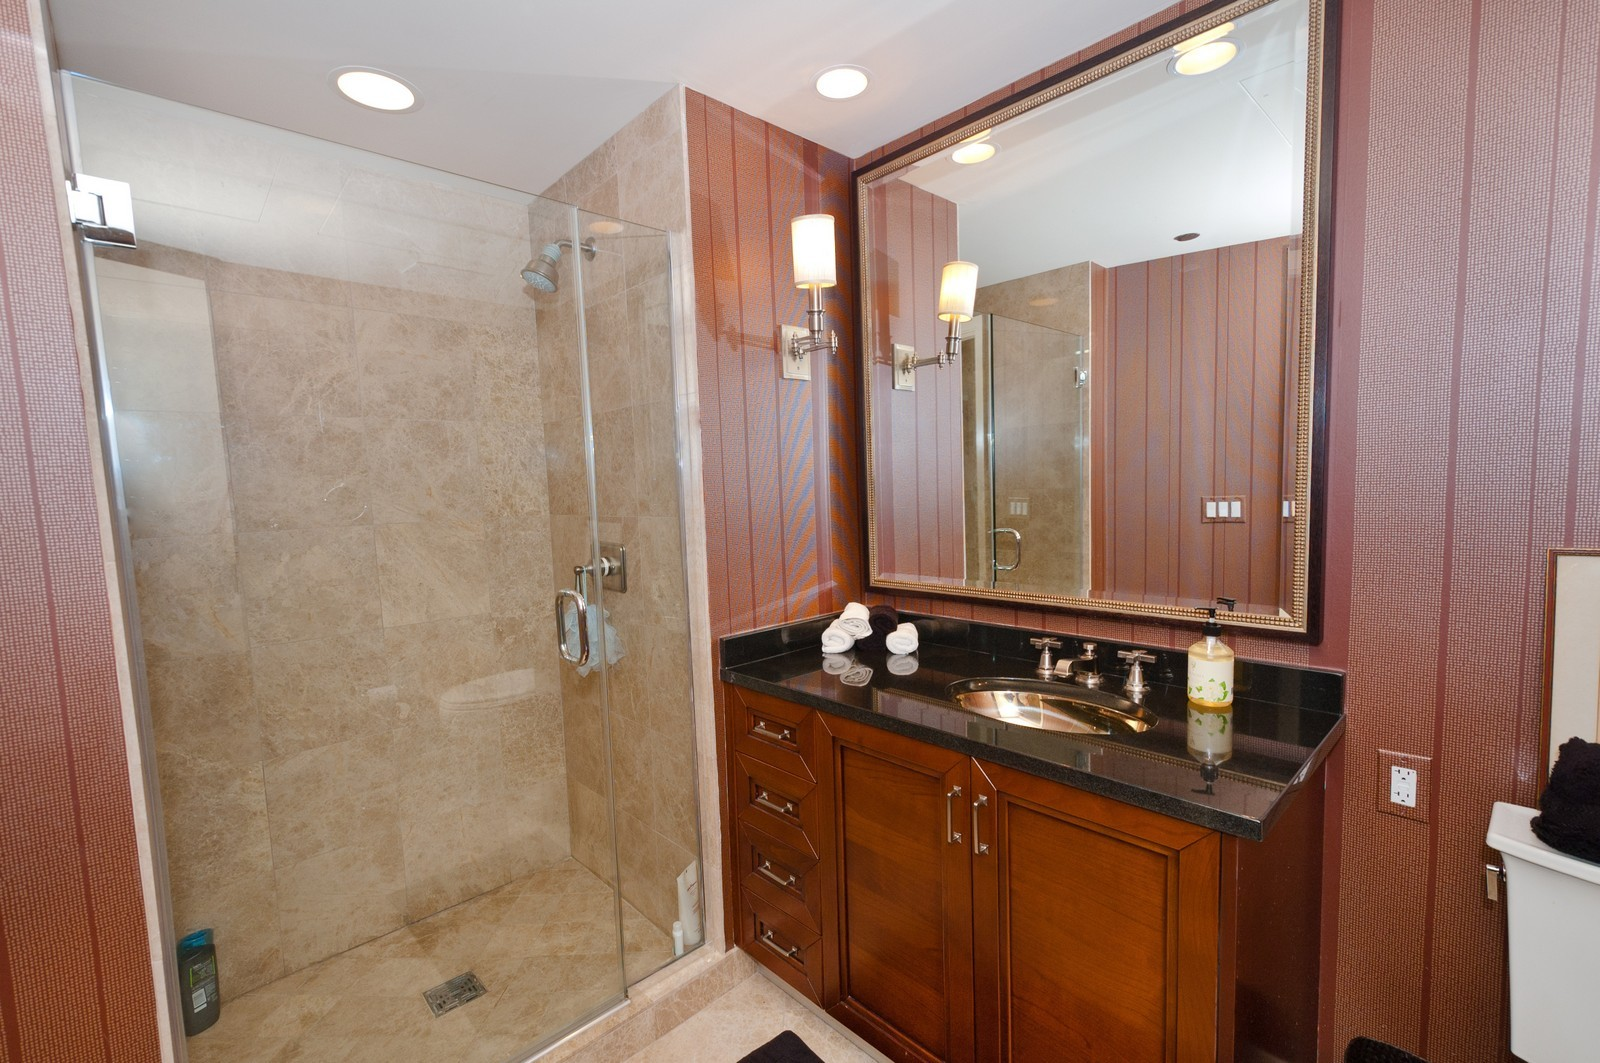 Real Estate Photography - 60 E. Monroe, 5901, Chicago, IL, 60603 - 2nd Bathroom